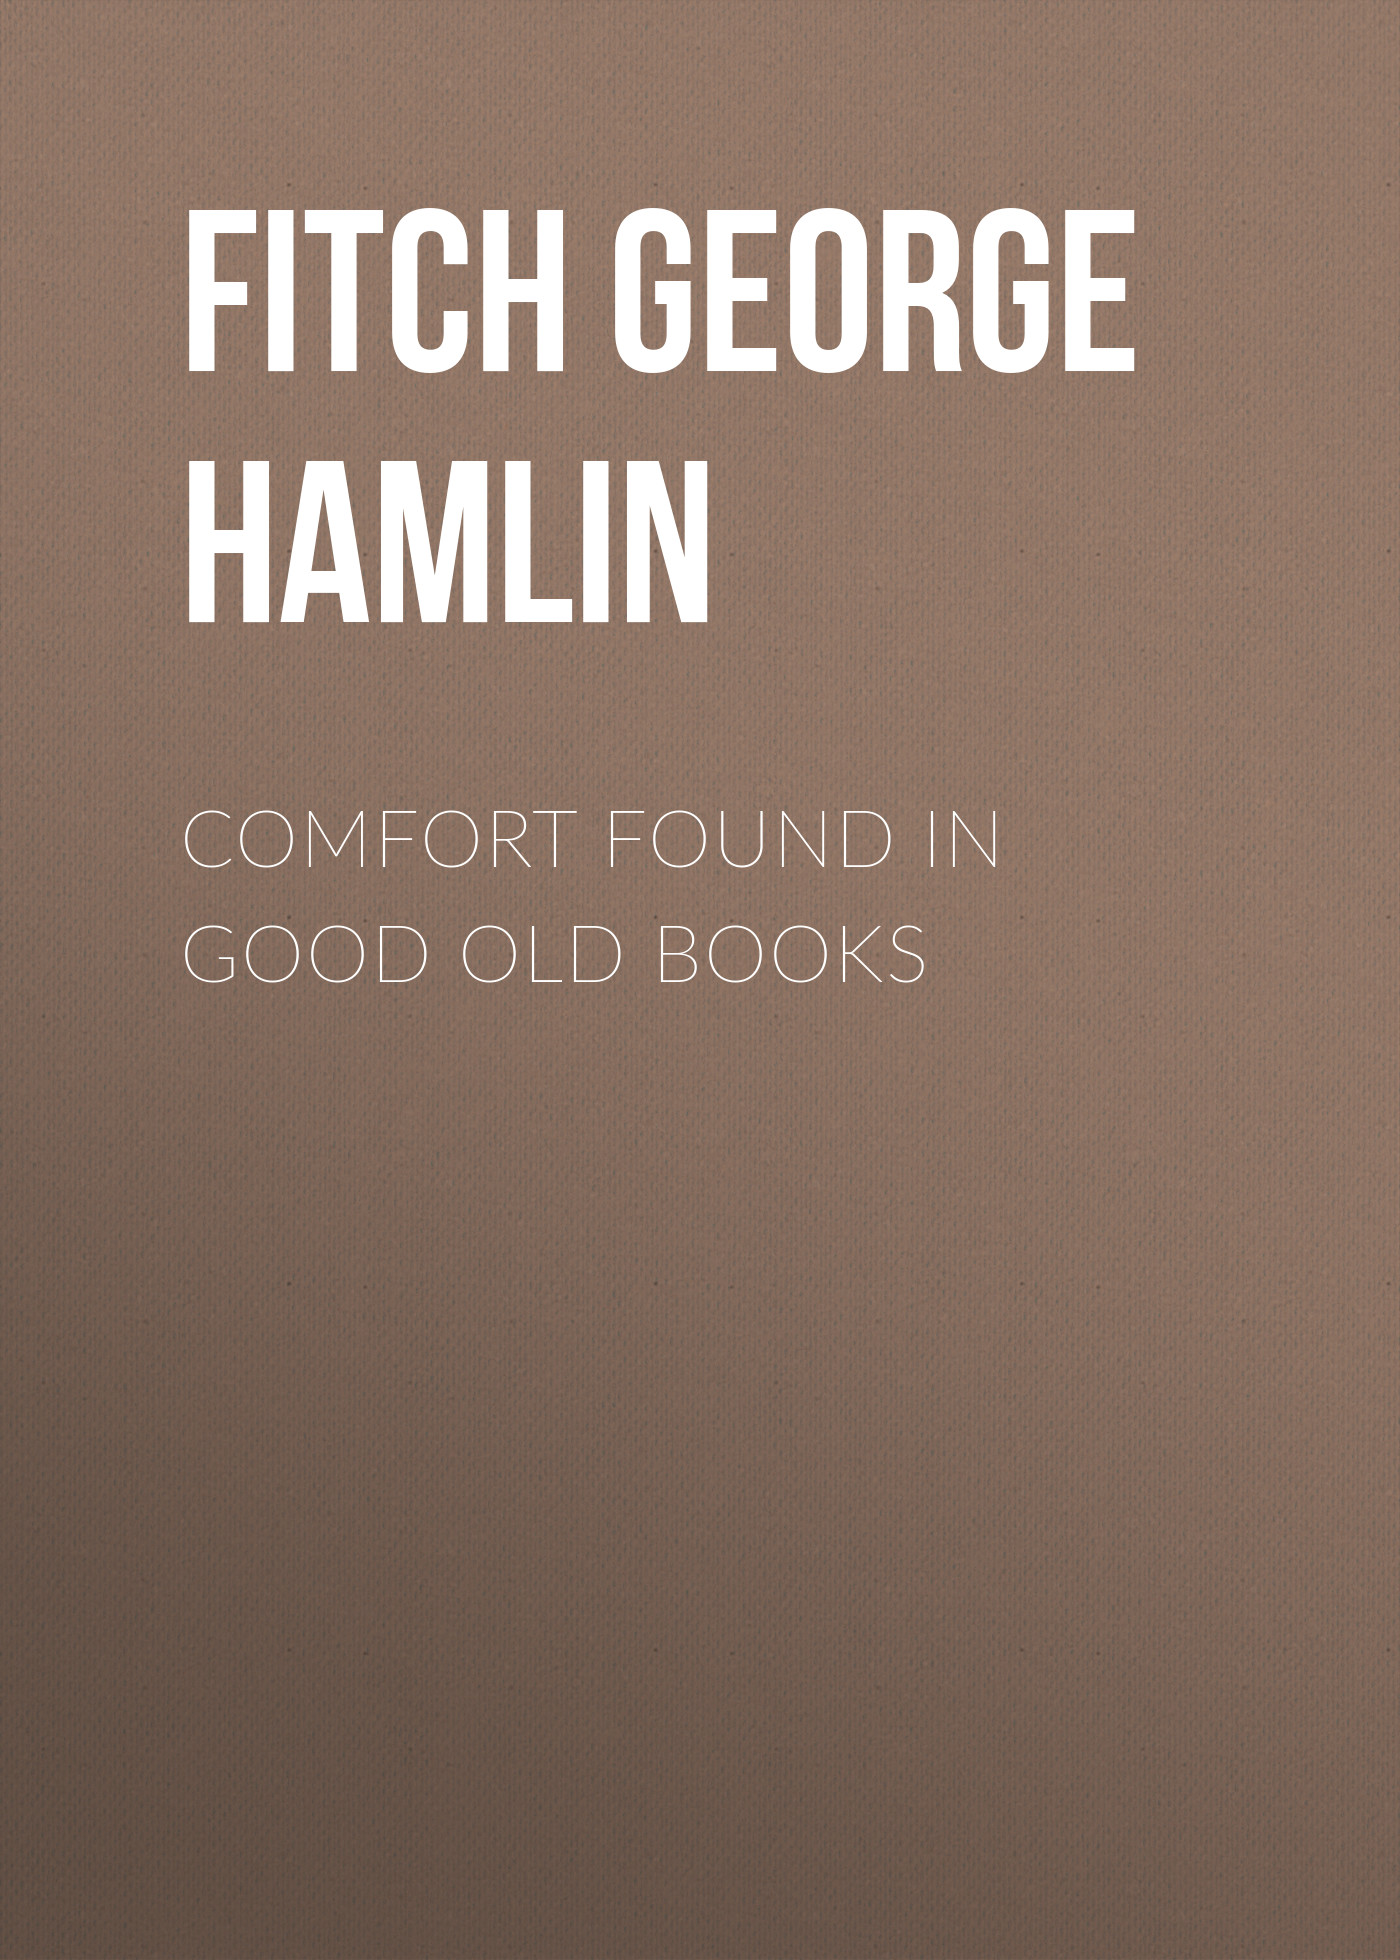 купить Fitch George Hamlin Comfort Found in Good Old Books по цене 0 рублей